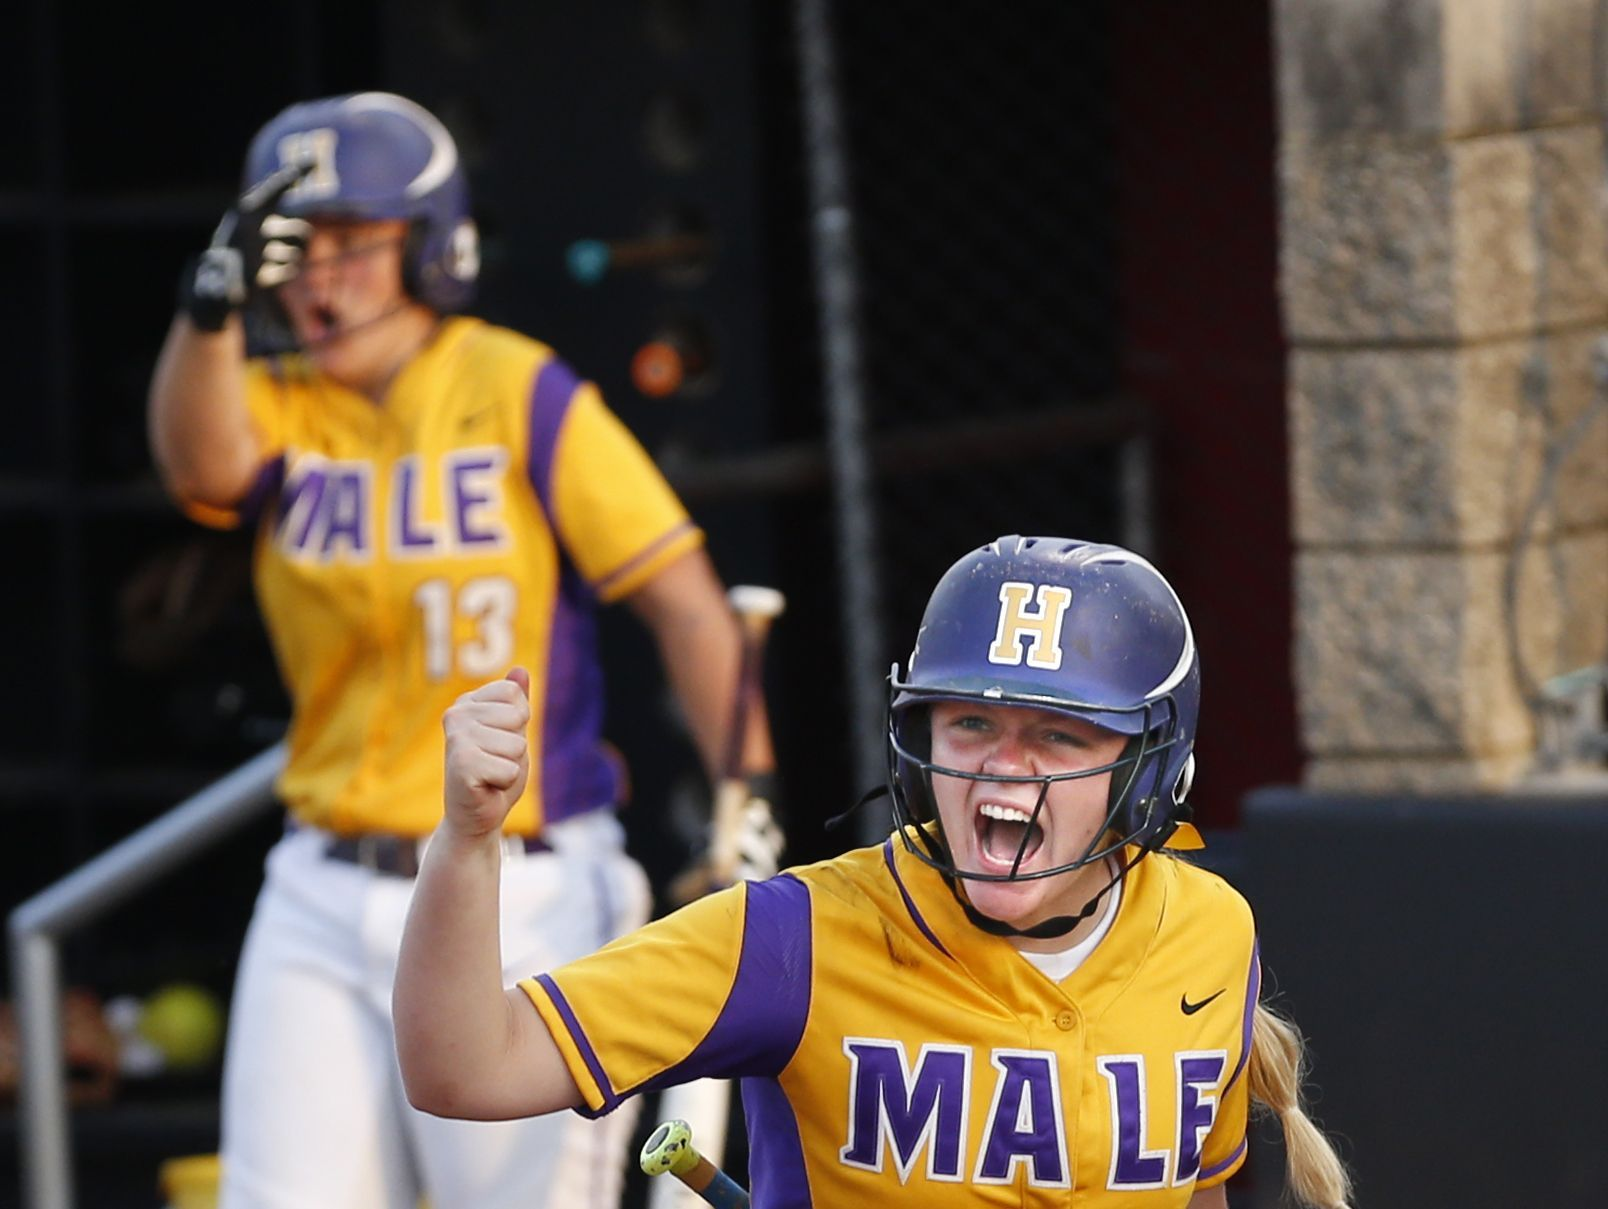 Male's Bayleigh Masterson celebrates after the Bulldogs go up 2-0 over Ballard. June 1, 2016